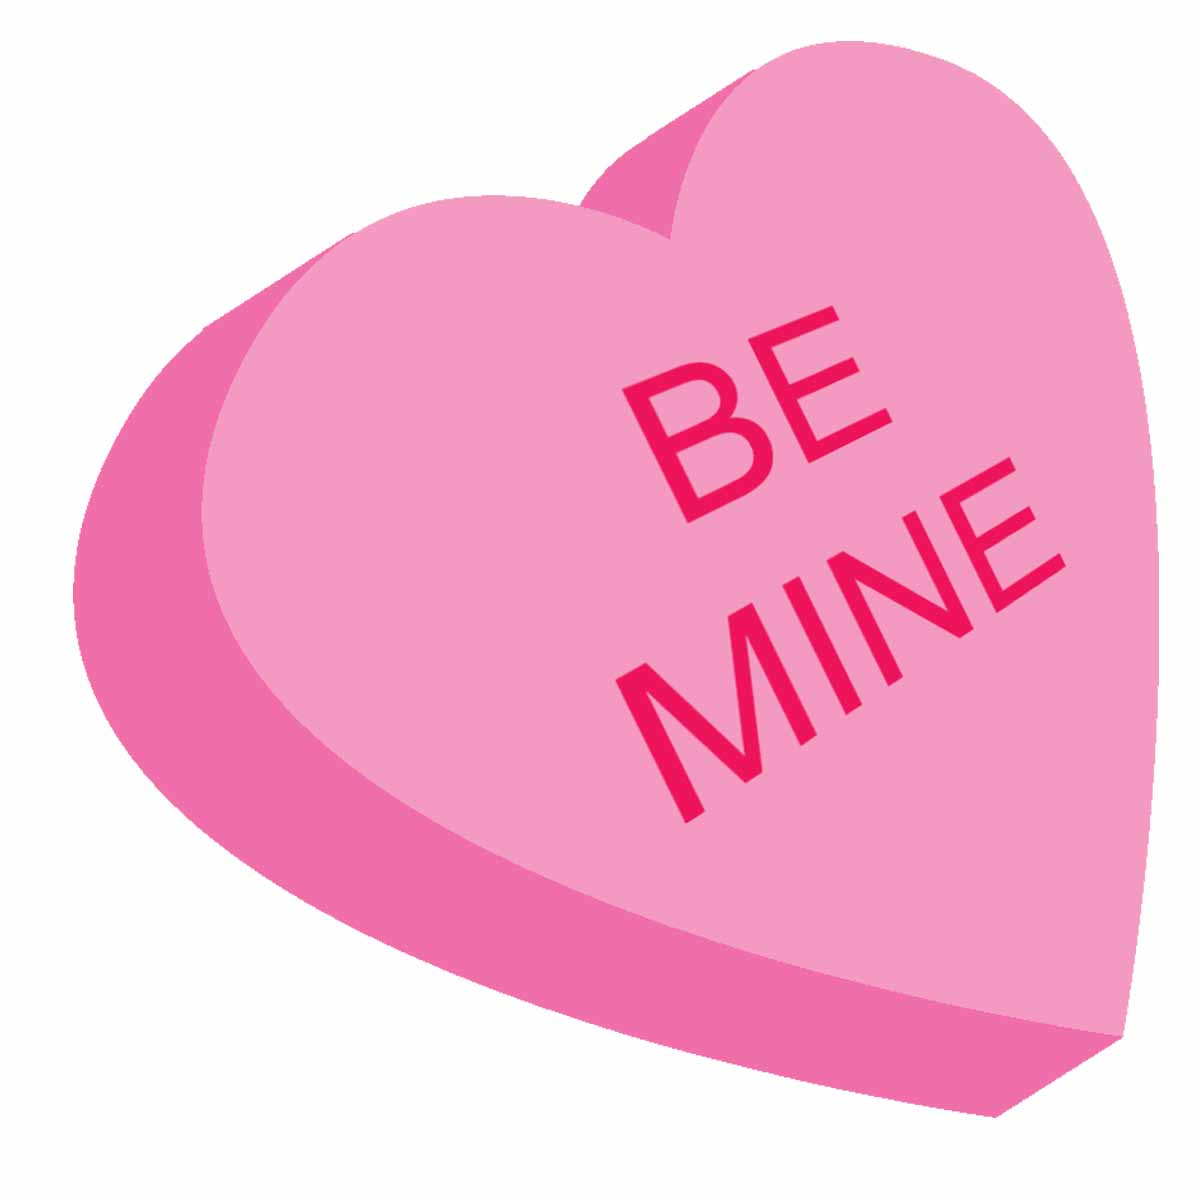 1200x1200 Valentines Day Clipart For Sharing On Valentines Day 2